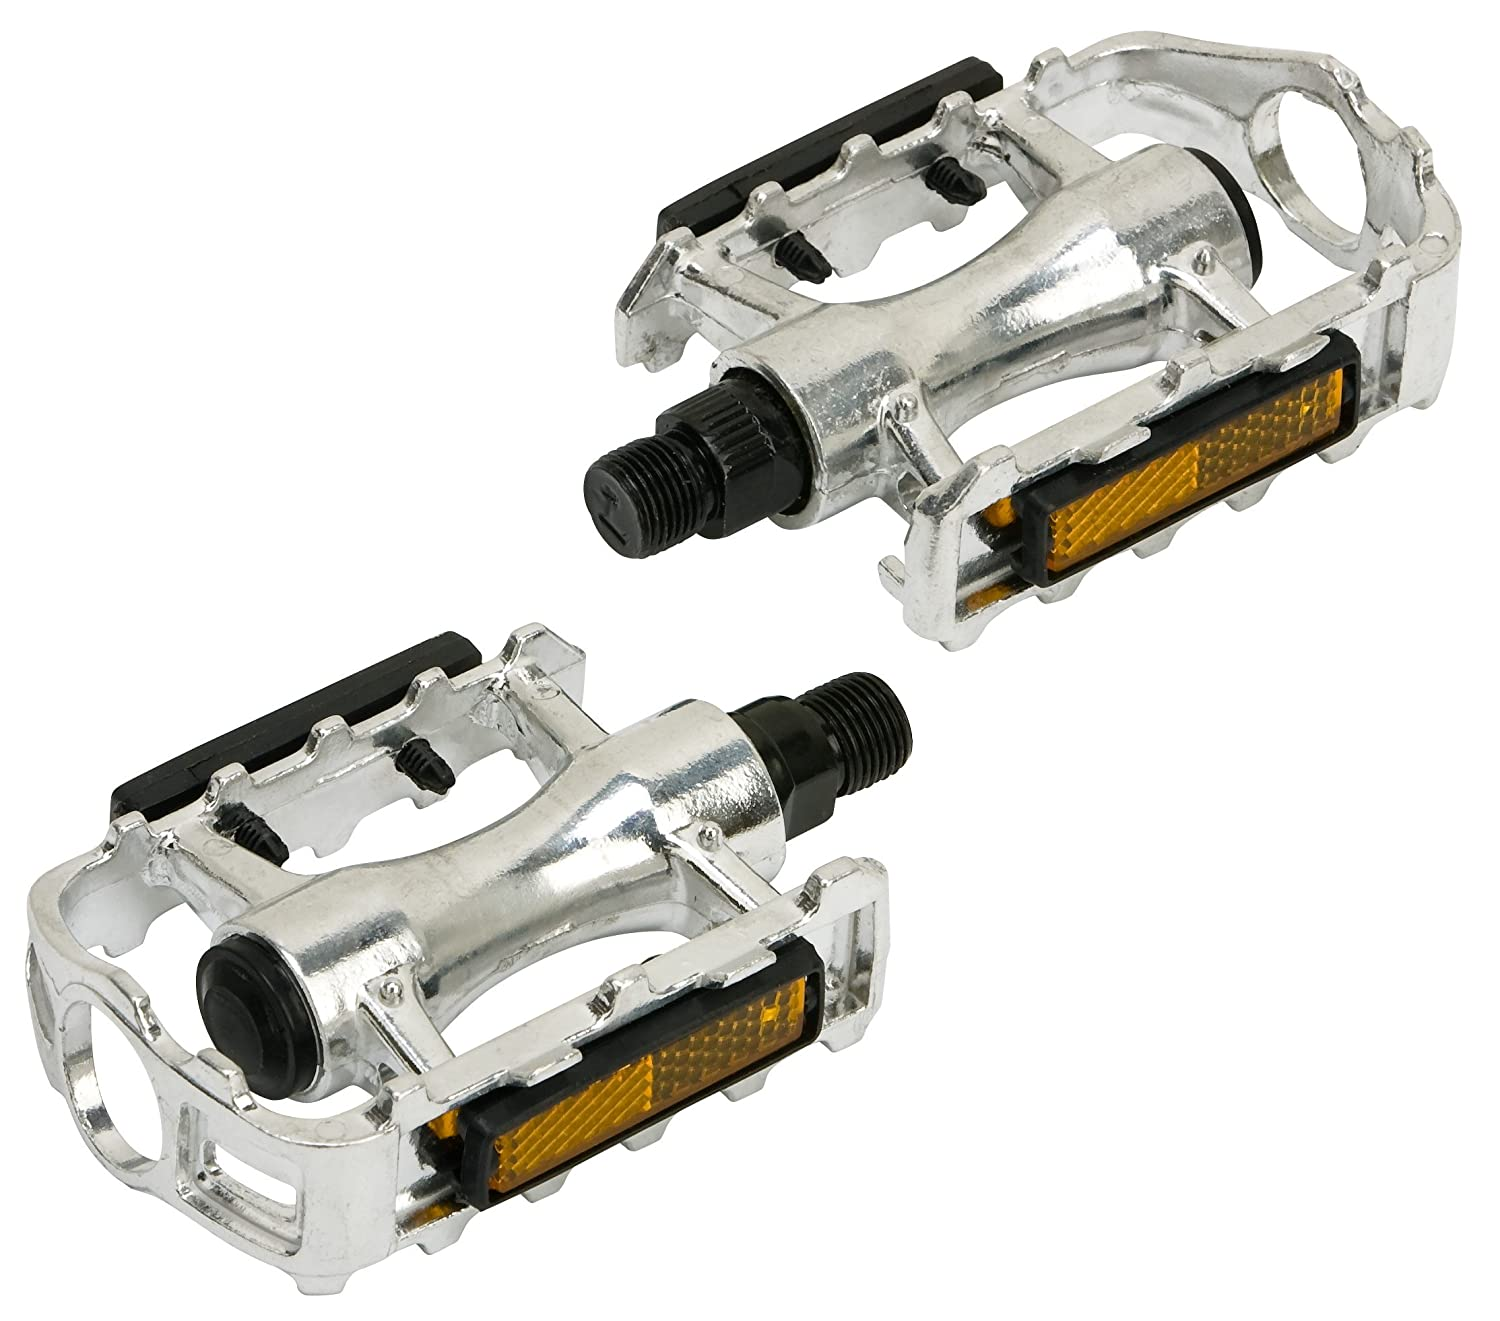 47f30576b37 com Schwinn Alloy Bicycle Pedals Bike Pedals Sports   Outdoors